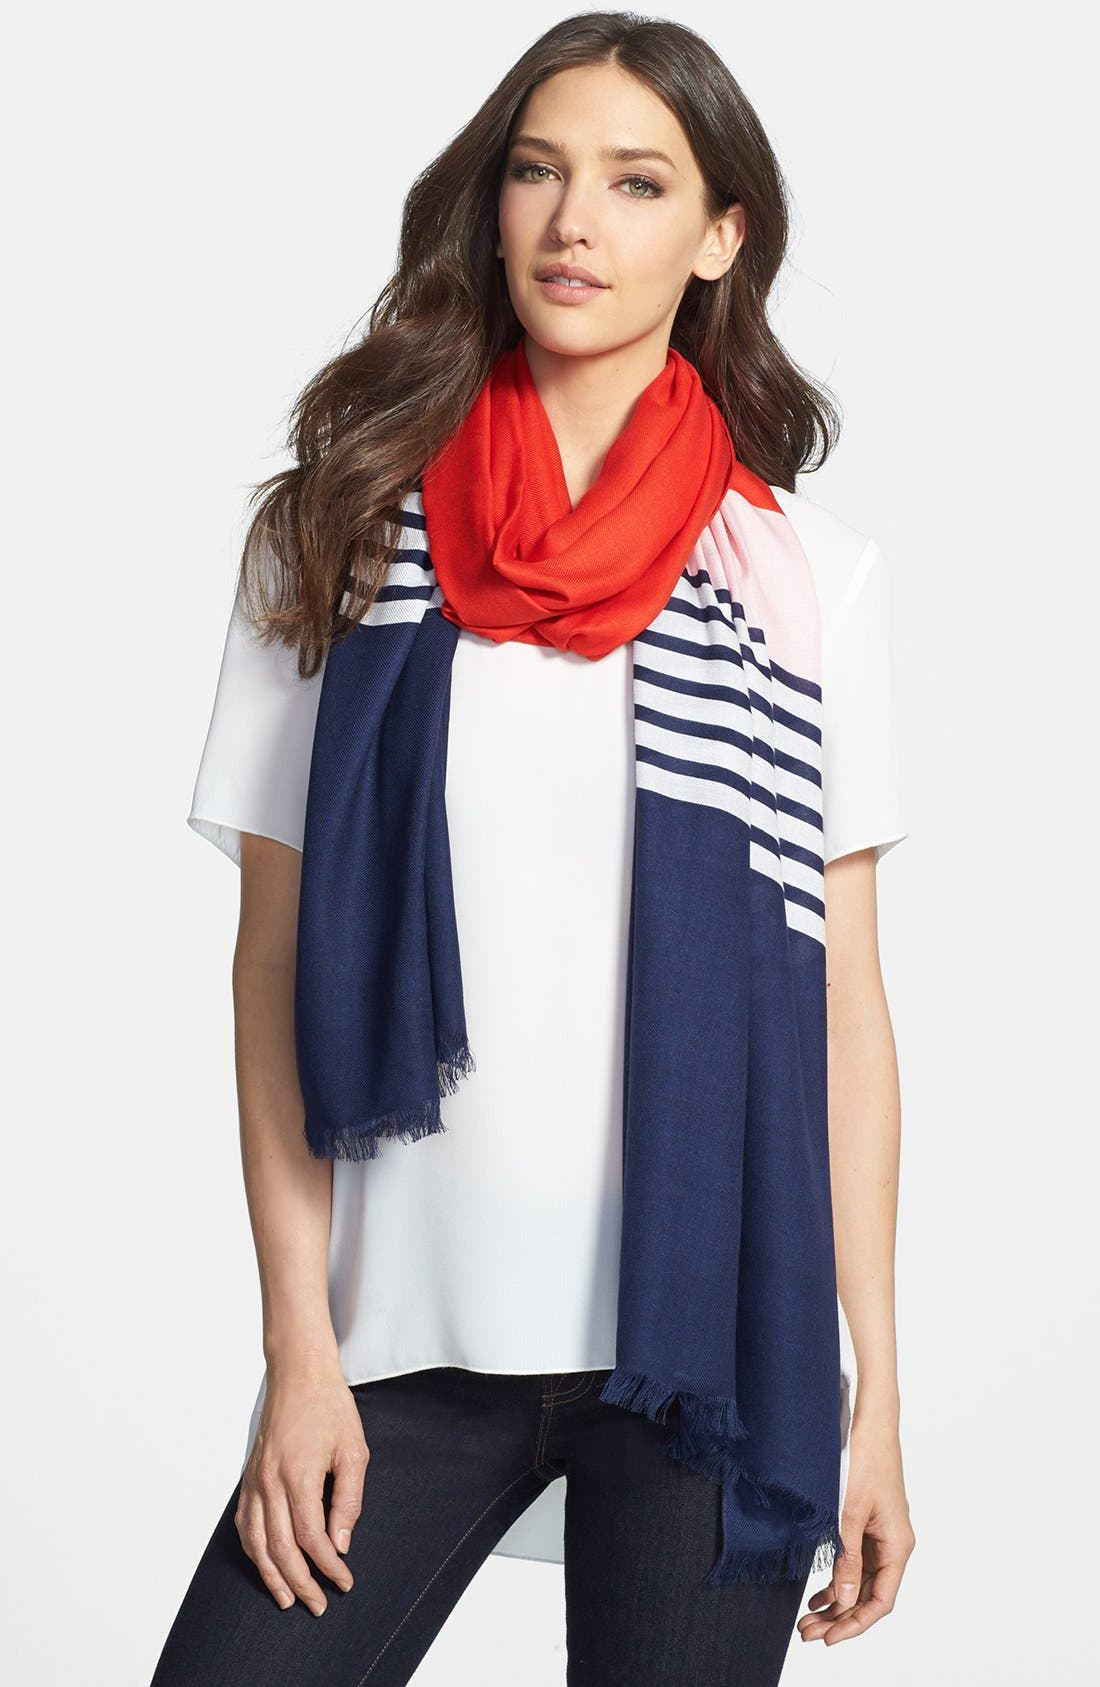 KATE SPADE NEW YORK,                             colorblock scarf,                             Main thumbnail 1, color,                             600